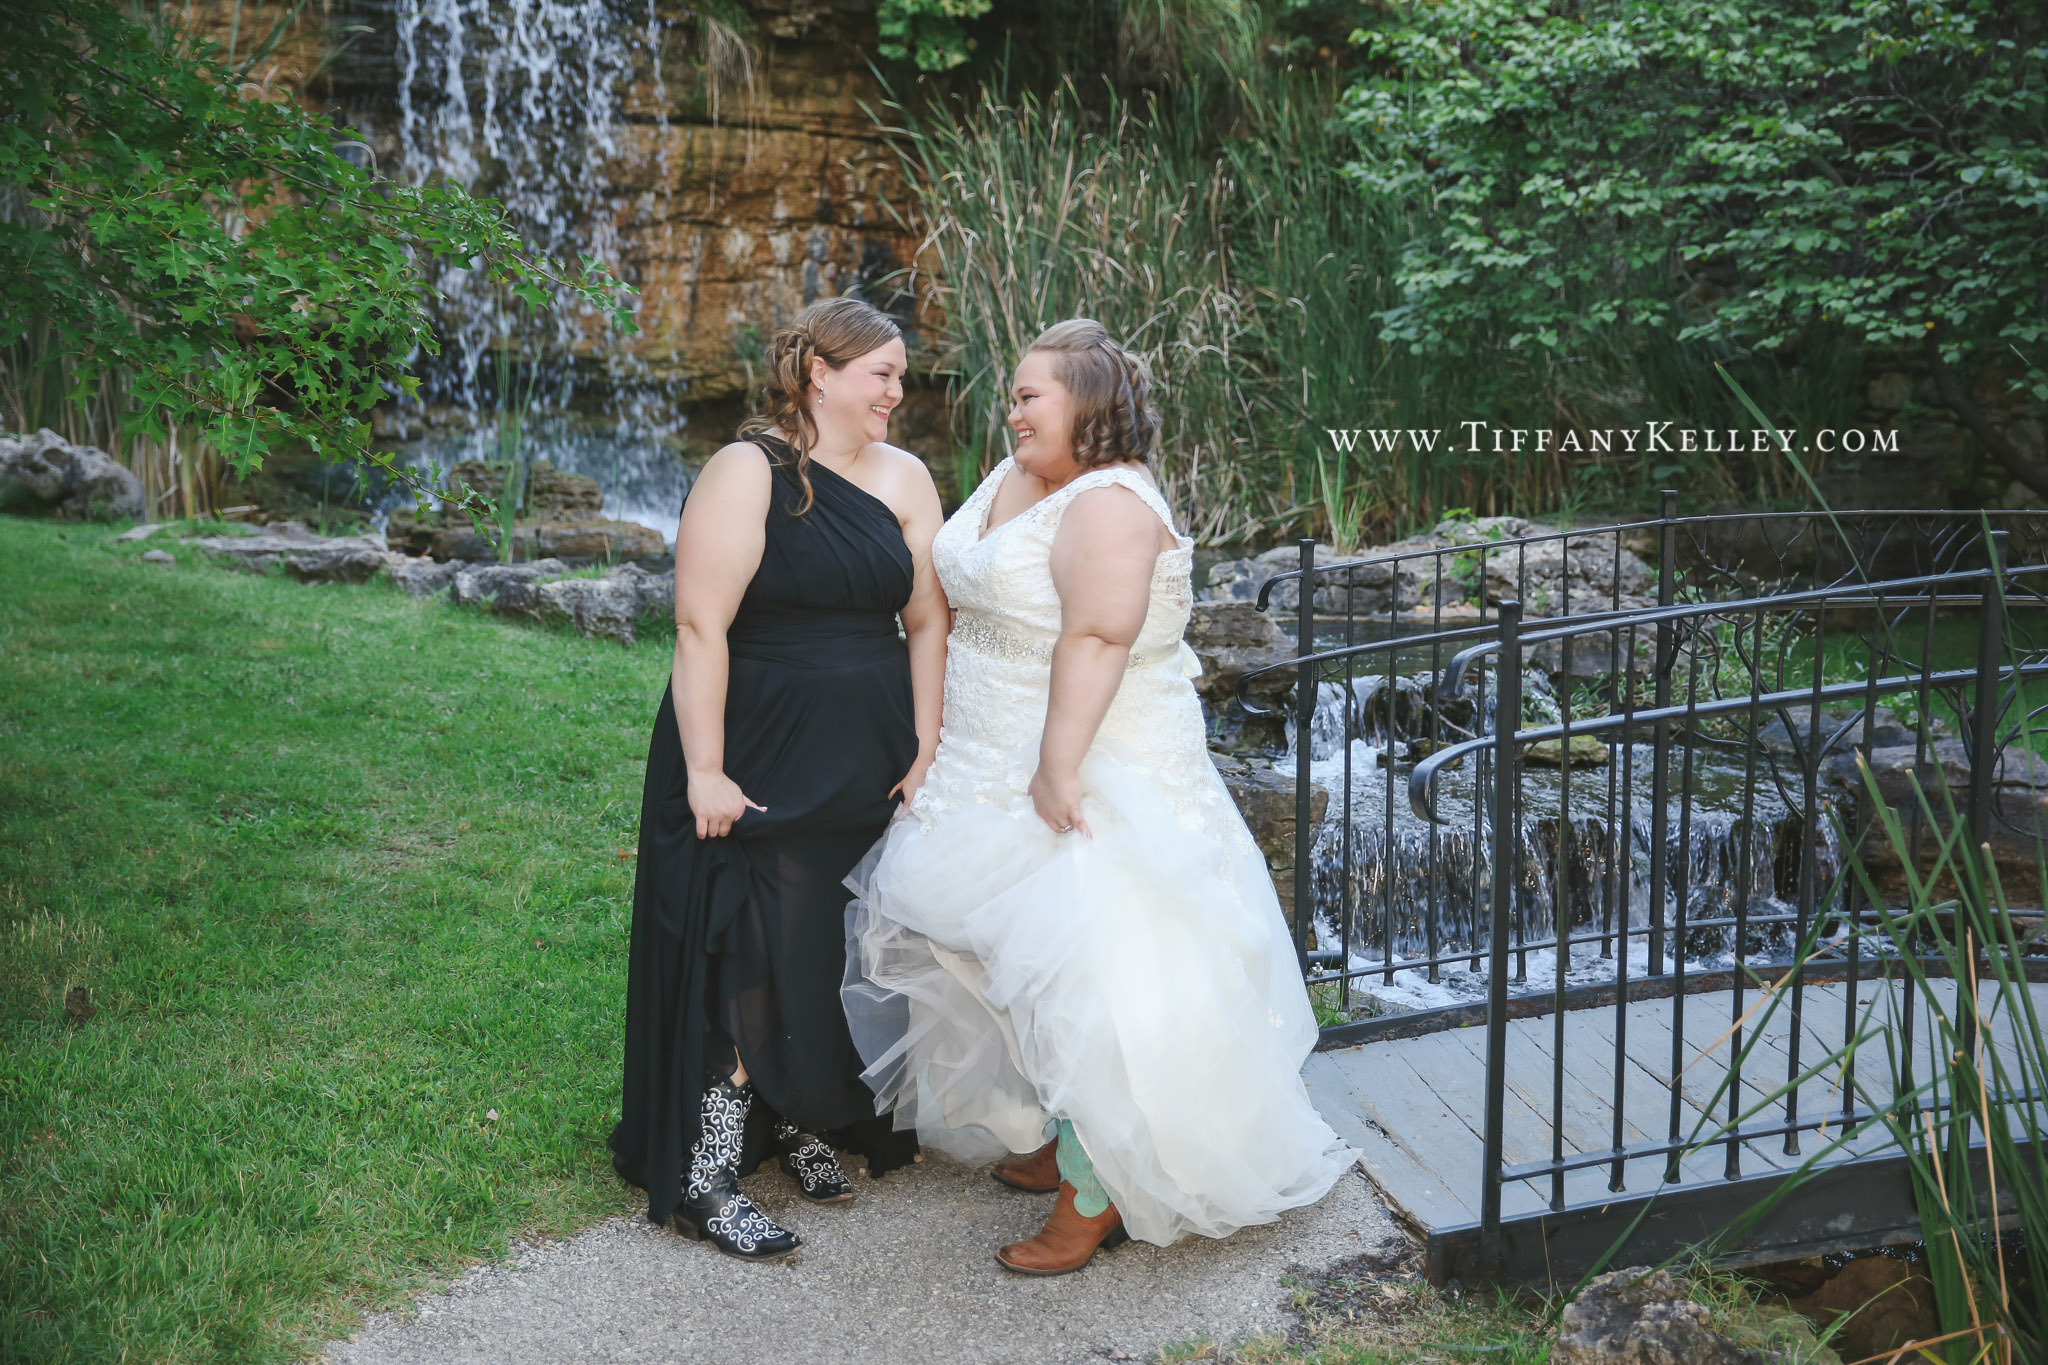 branson-missouri-big-cedar-lodge-wedding-photographer-tiffany-kelley-photography-10